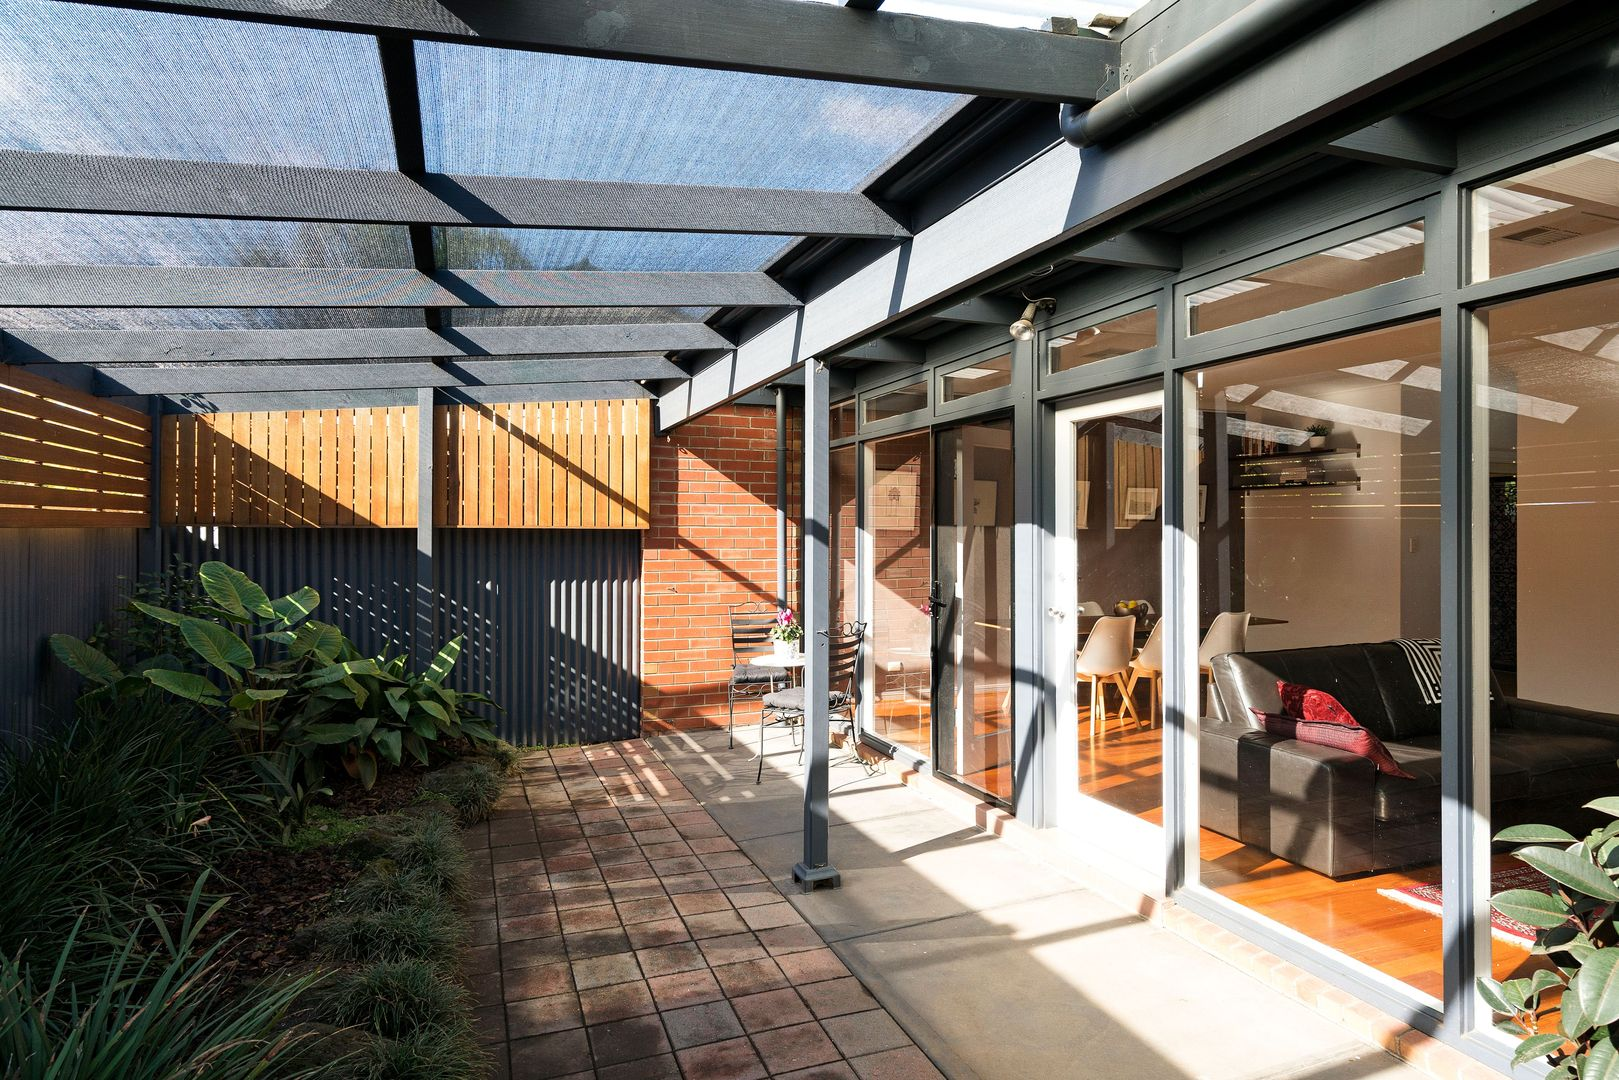 3/75 Coombe Road, Allenby Gardens SA 5009, Image 1